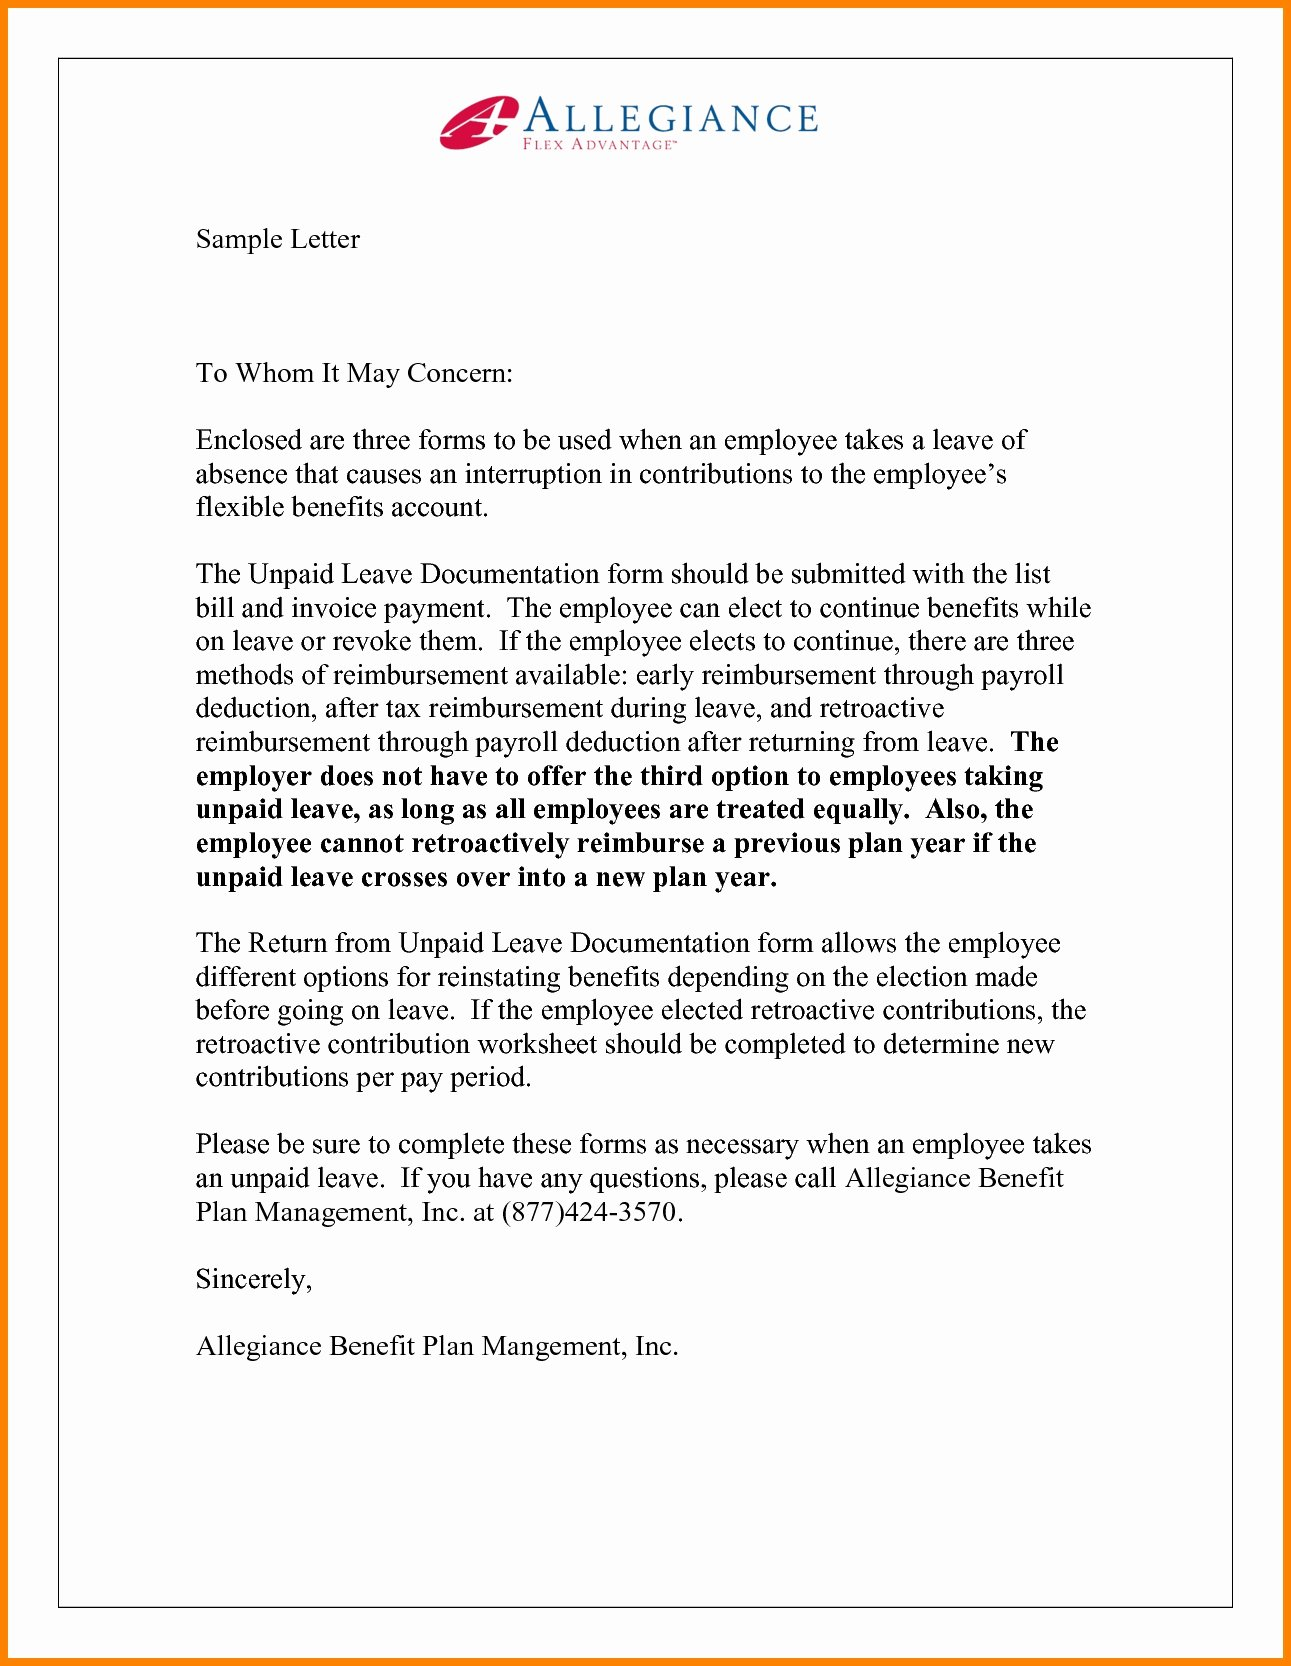 Concerned Letter Sample Unique to whom It May Concern Letter Sample for Employee